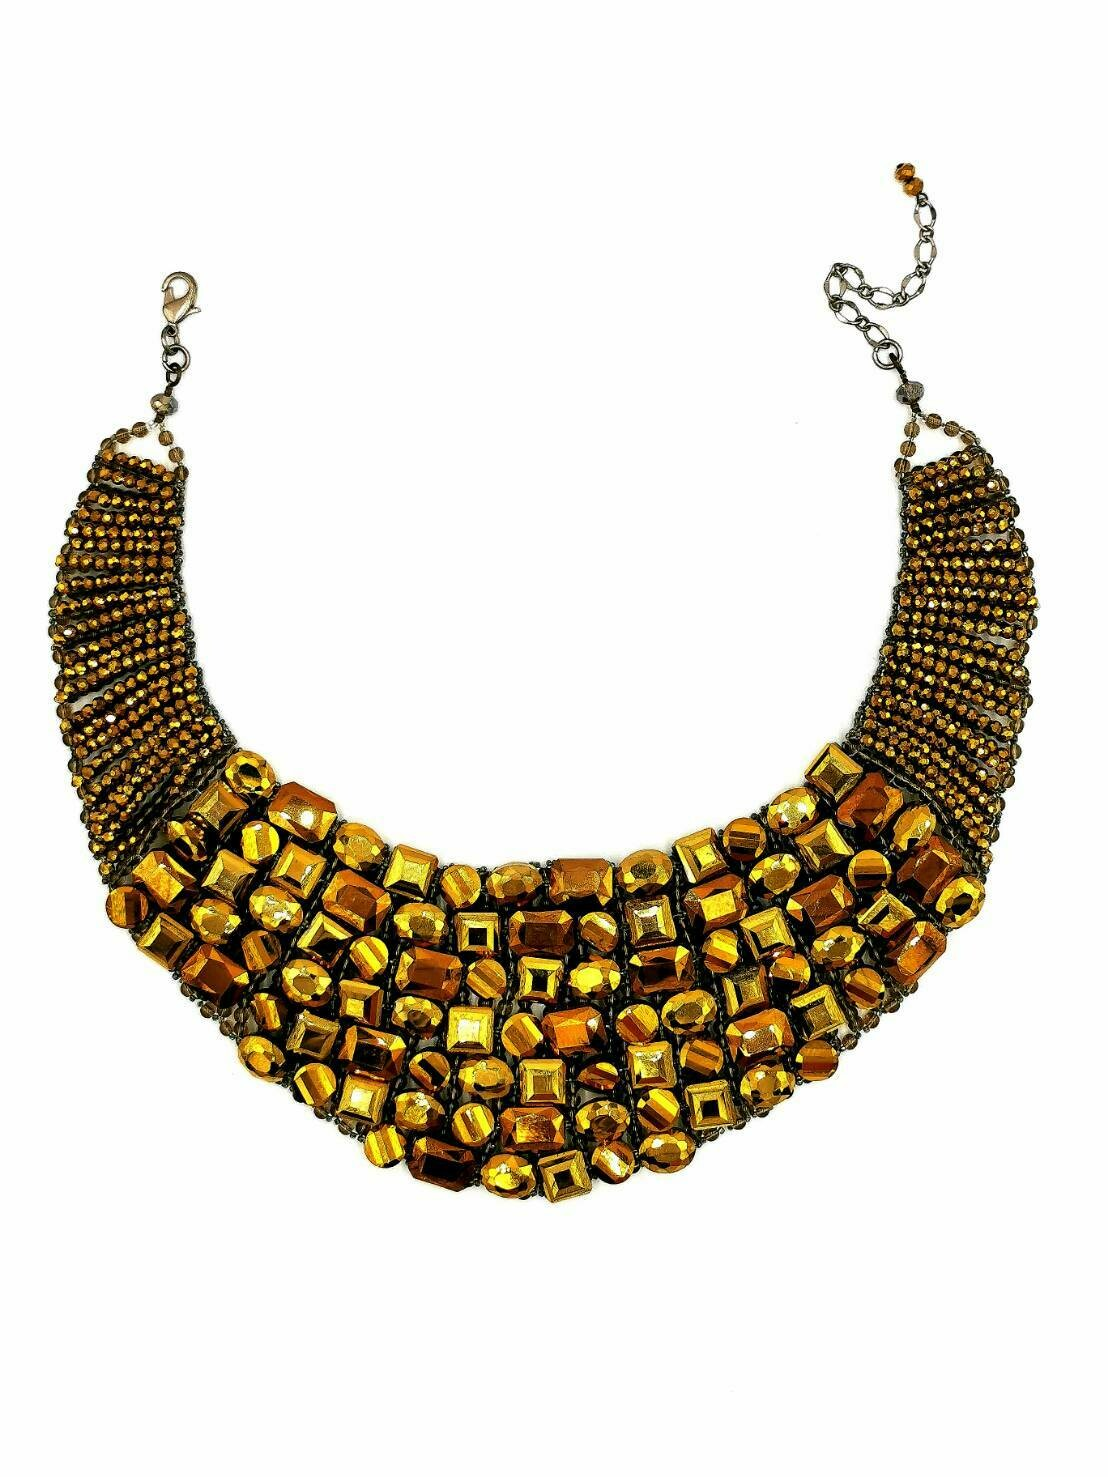 Delightfully Dazzling Statement Necklace